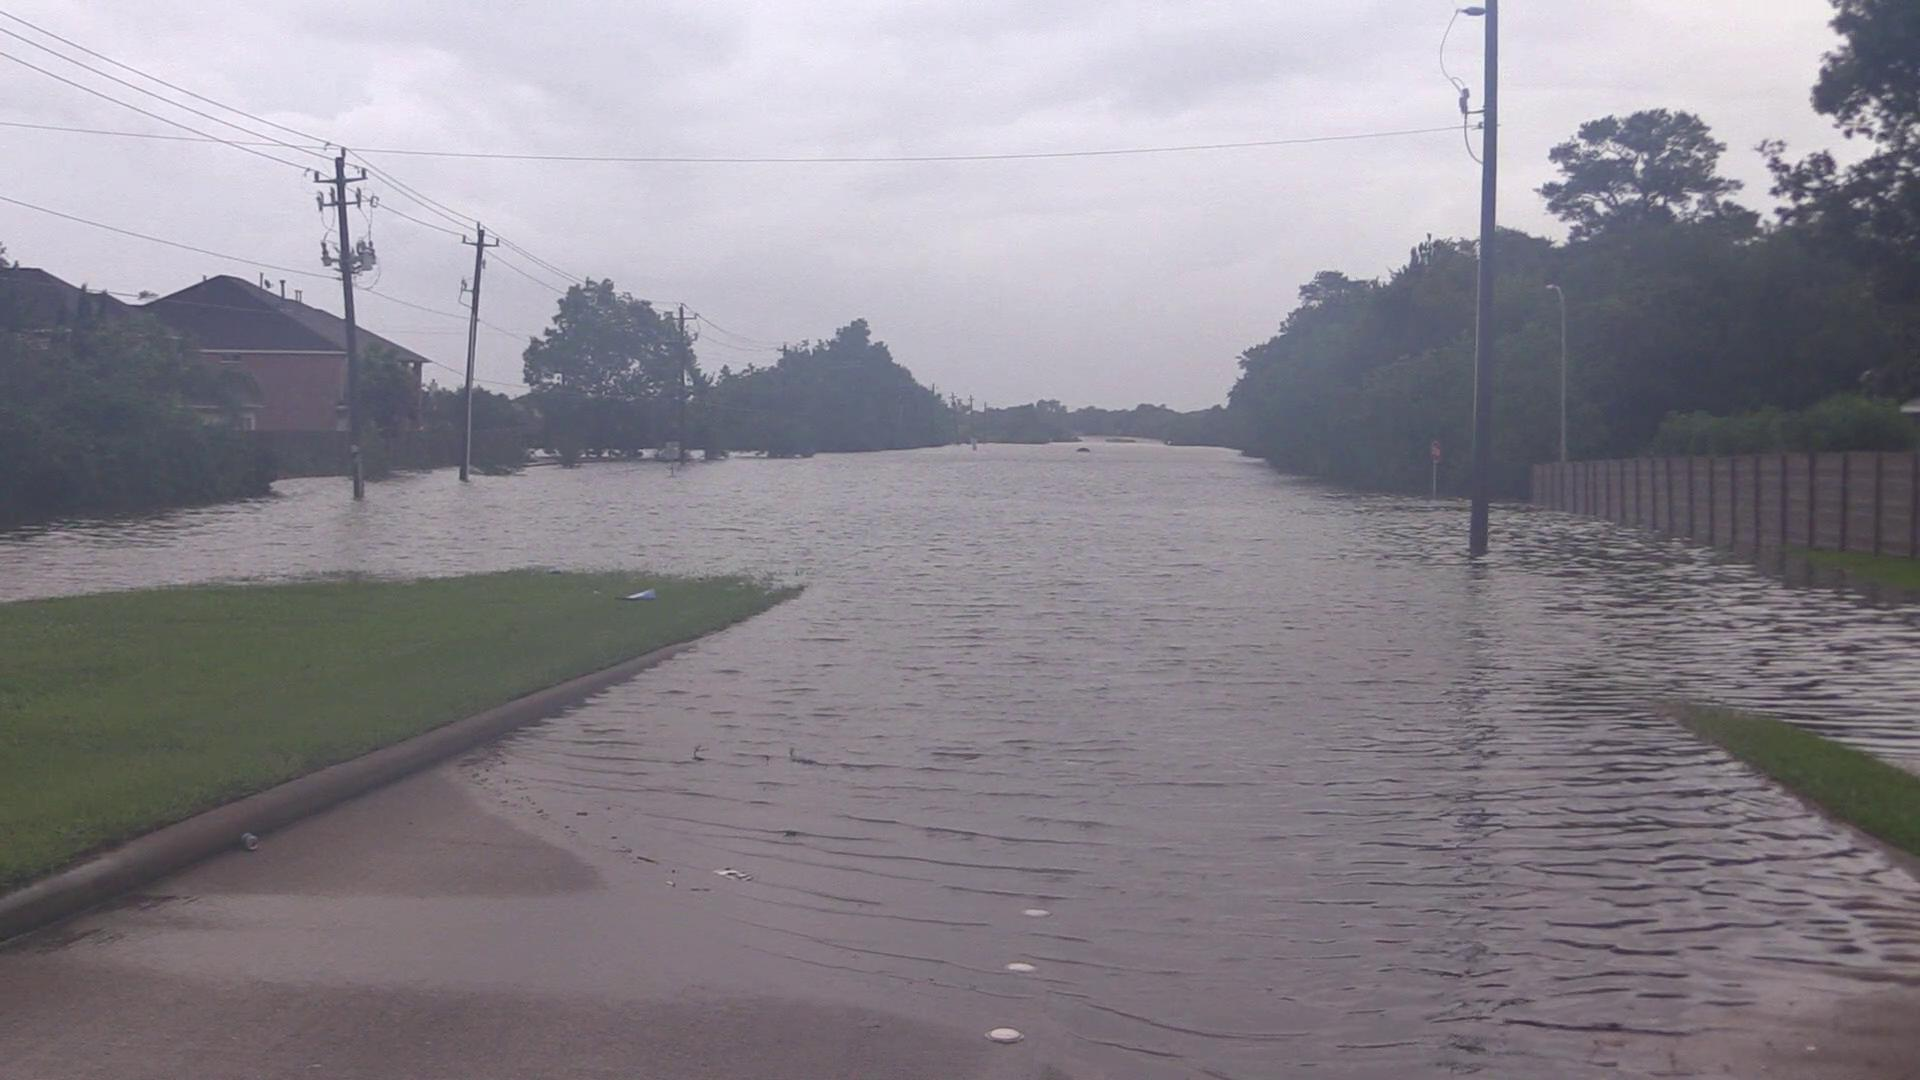 Friendswood, TX - Historic Flooding Clear Creek (VIDEO: Live Storm Media / Sam Dienst)Thumbnail